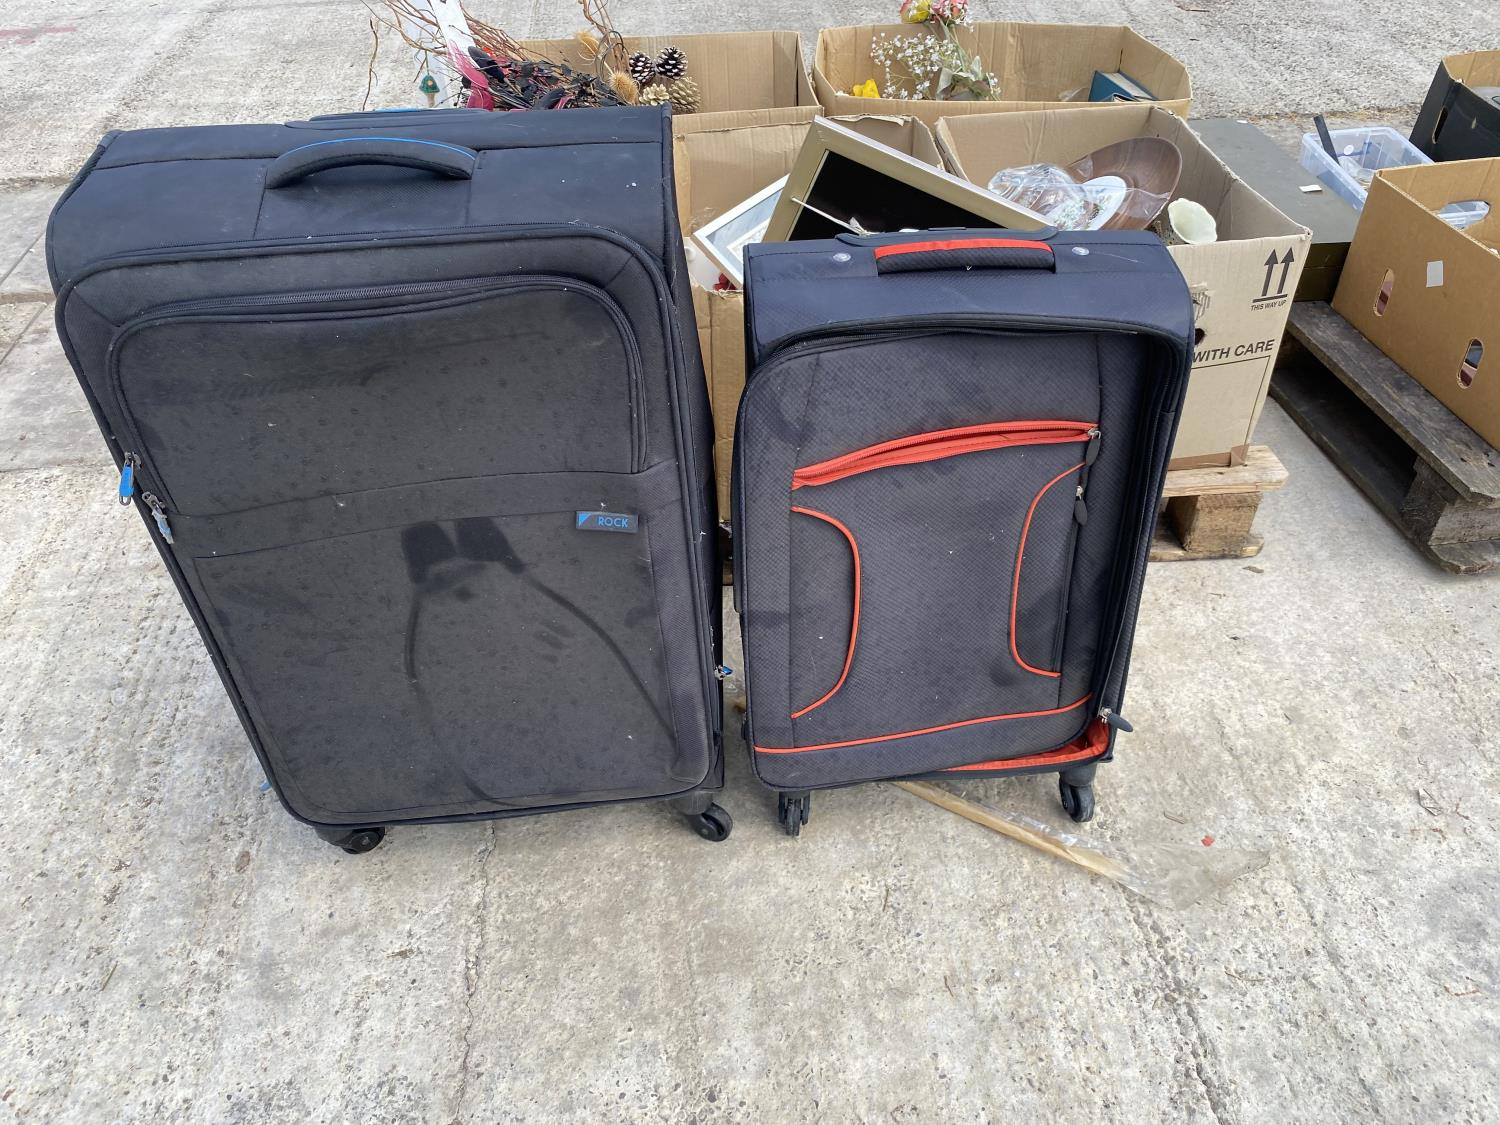 AN ASSORTMENT OF HOUSEHOLD CLEARANCE ITEMS TO INCLUDE SUITCASES, CERAMICS AND PRINTS ETC - Image 2 of 4